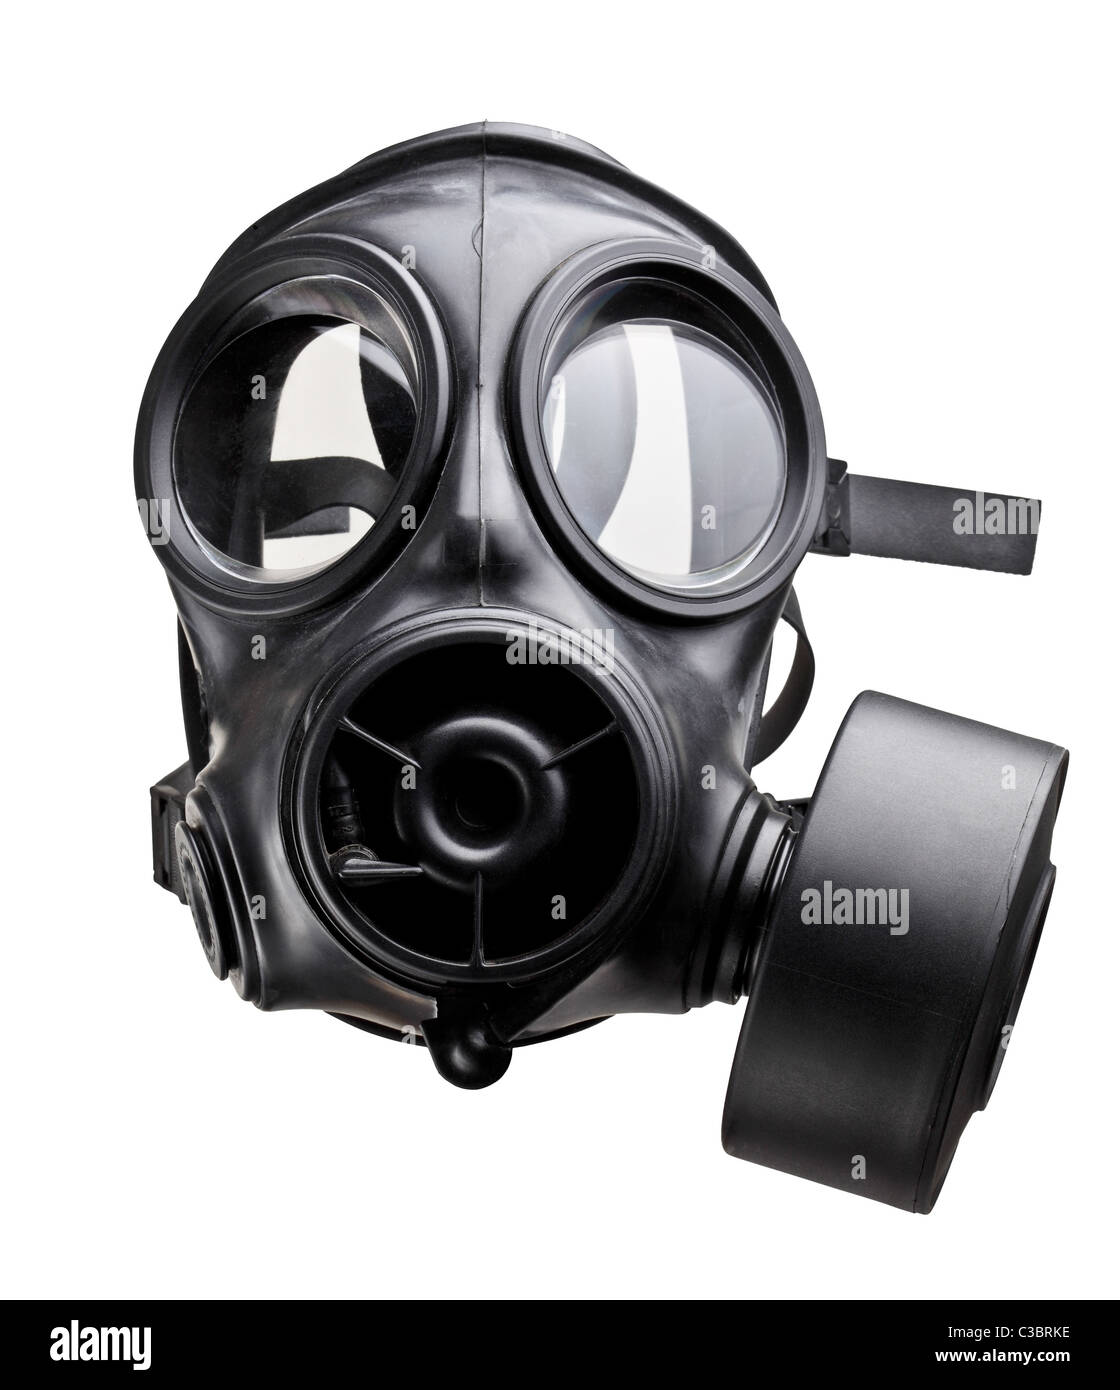 fine image of classic british army gas mask - Stock Image